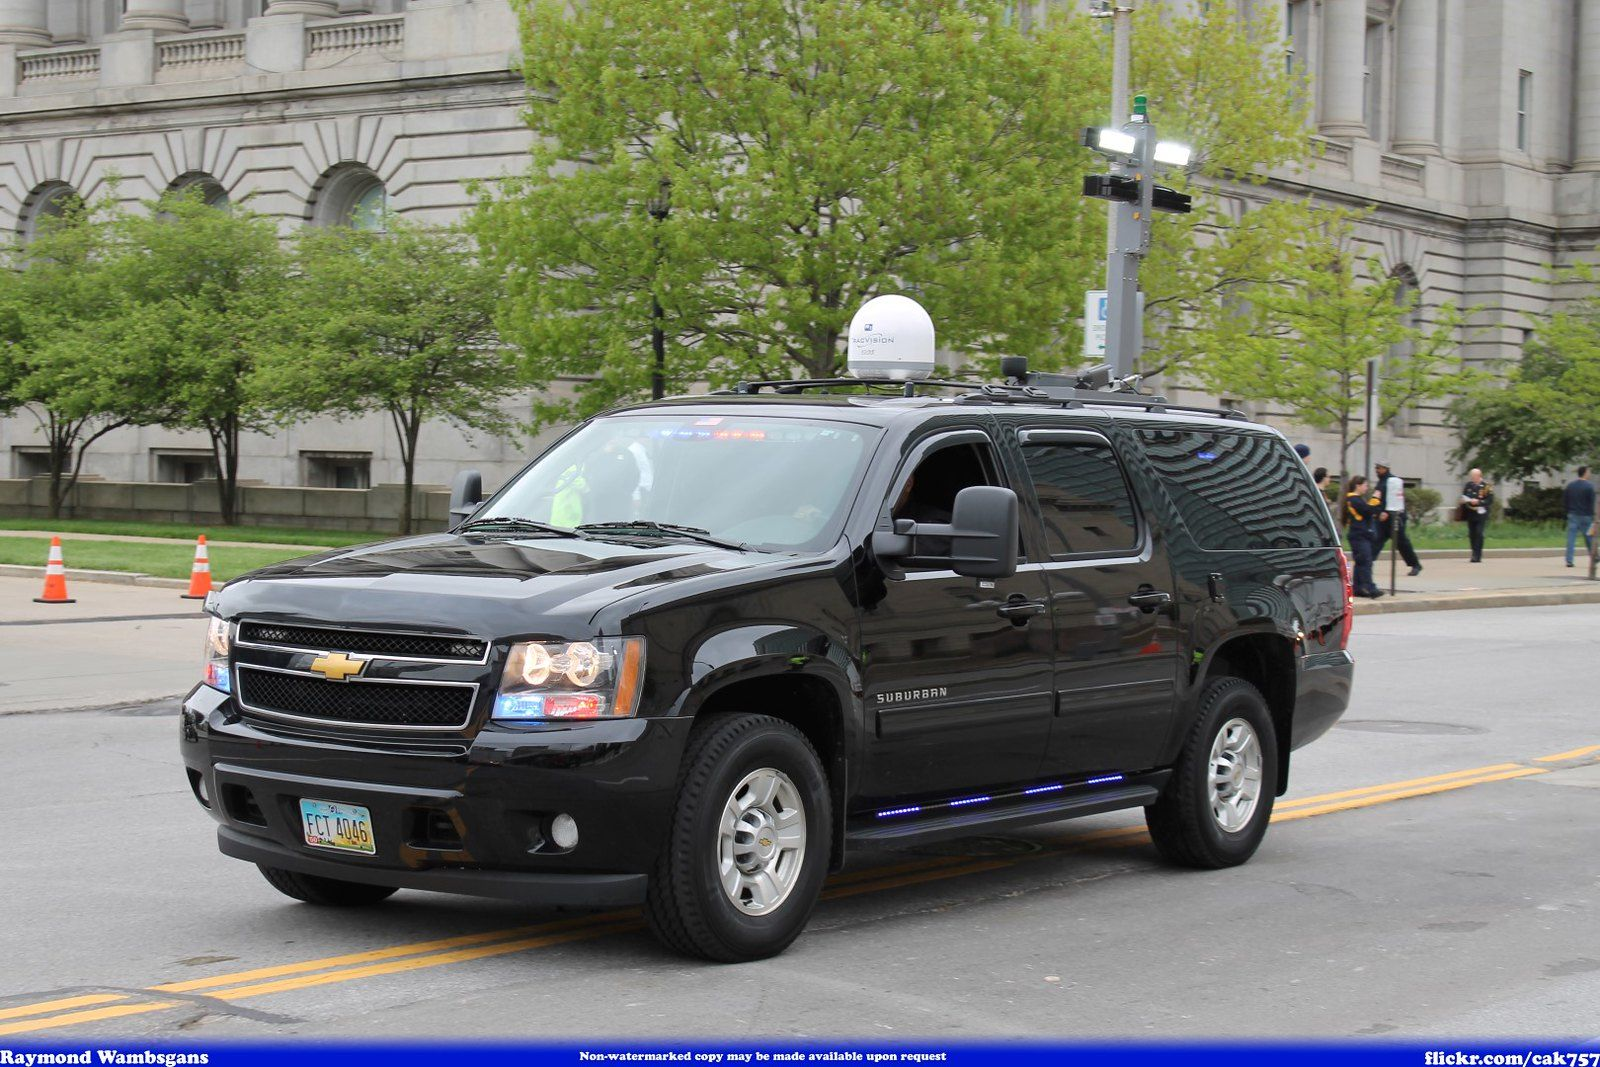 FBI Federal Bureau of Investigation Chevrolet Suburban | Chevrolet  suburban, Police truck, Fbi car